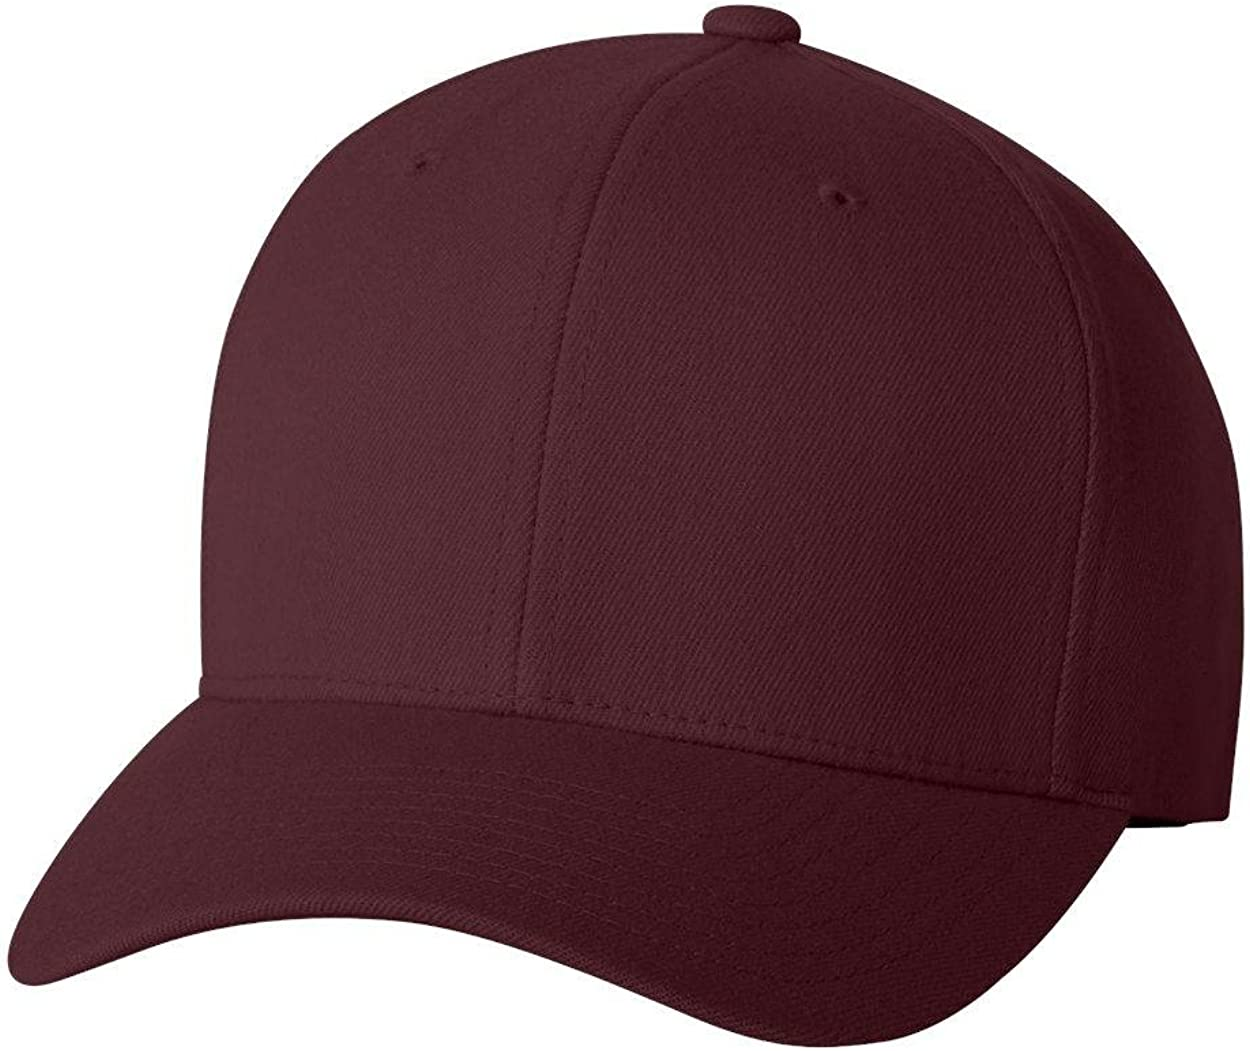 Flexfit Fitted Mid-Profile Structured Wool Cap Brown, Large//X-Large